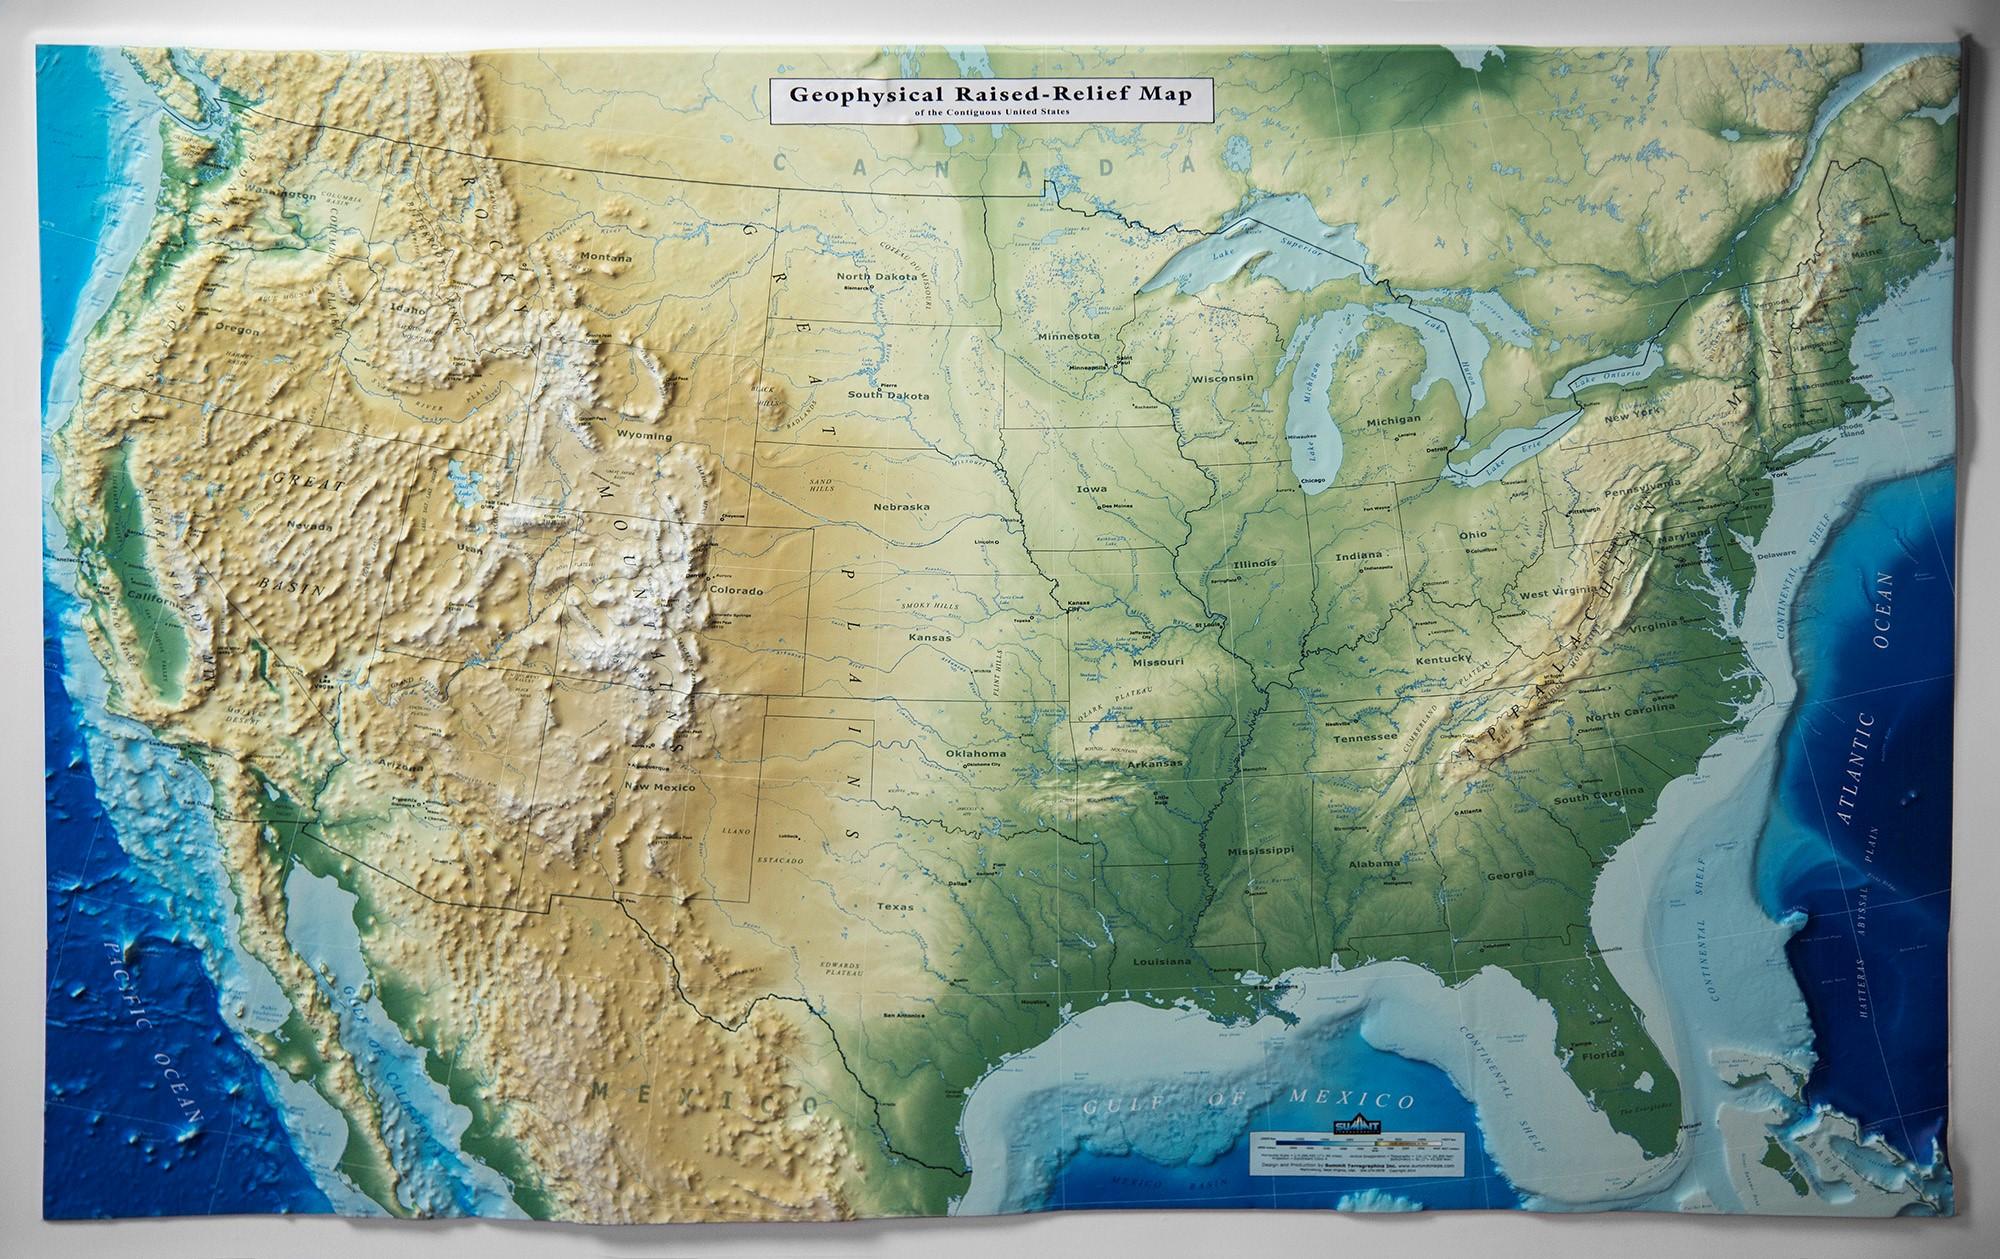 3D US Map - Geophysical - Summit Maps Image Of Continental Us Map on map of uk, map of state of montana, map of continents, map of arizona, map of colorado, map of canada, map of u.s.a, map of 48 contiguous states, map of california, map of europe, map of central america, map of island of ireland, map of puerto rico, map of u.s. territories, map of africa, map of state of rhode island, map of michigan, map of contiguous united states, map of australia,